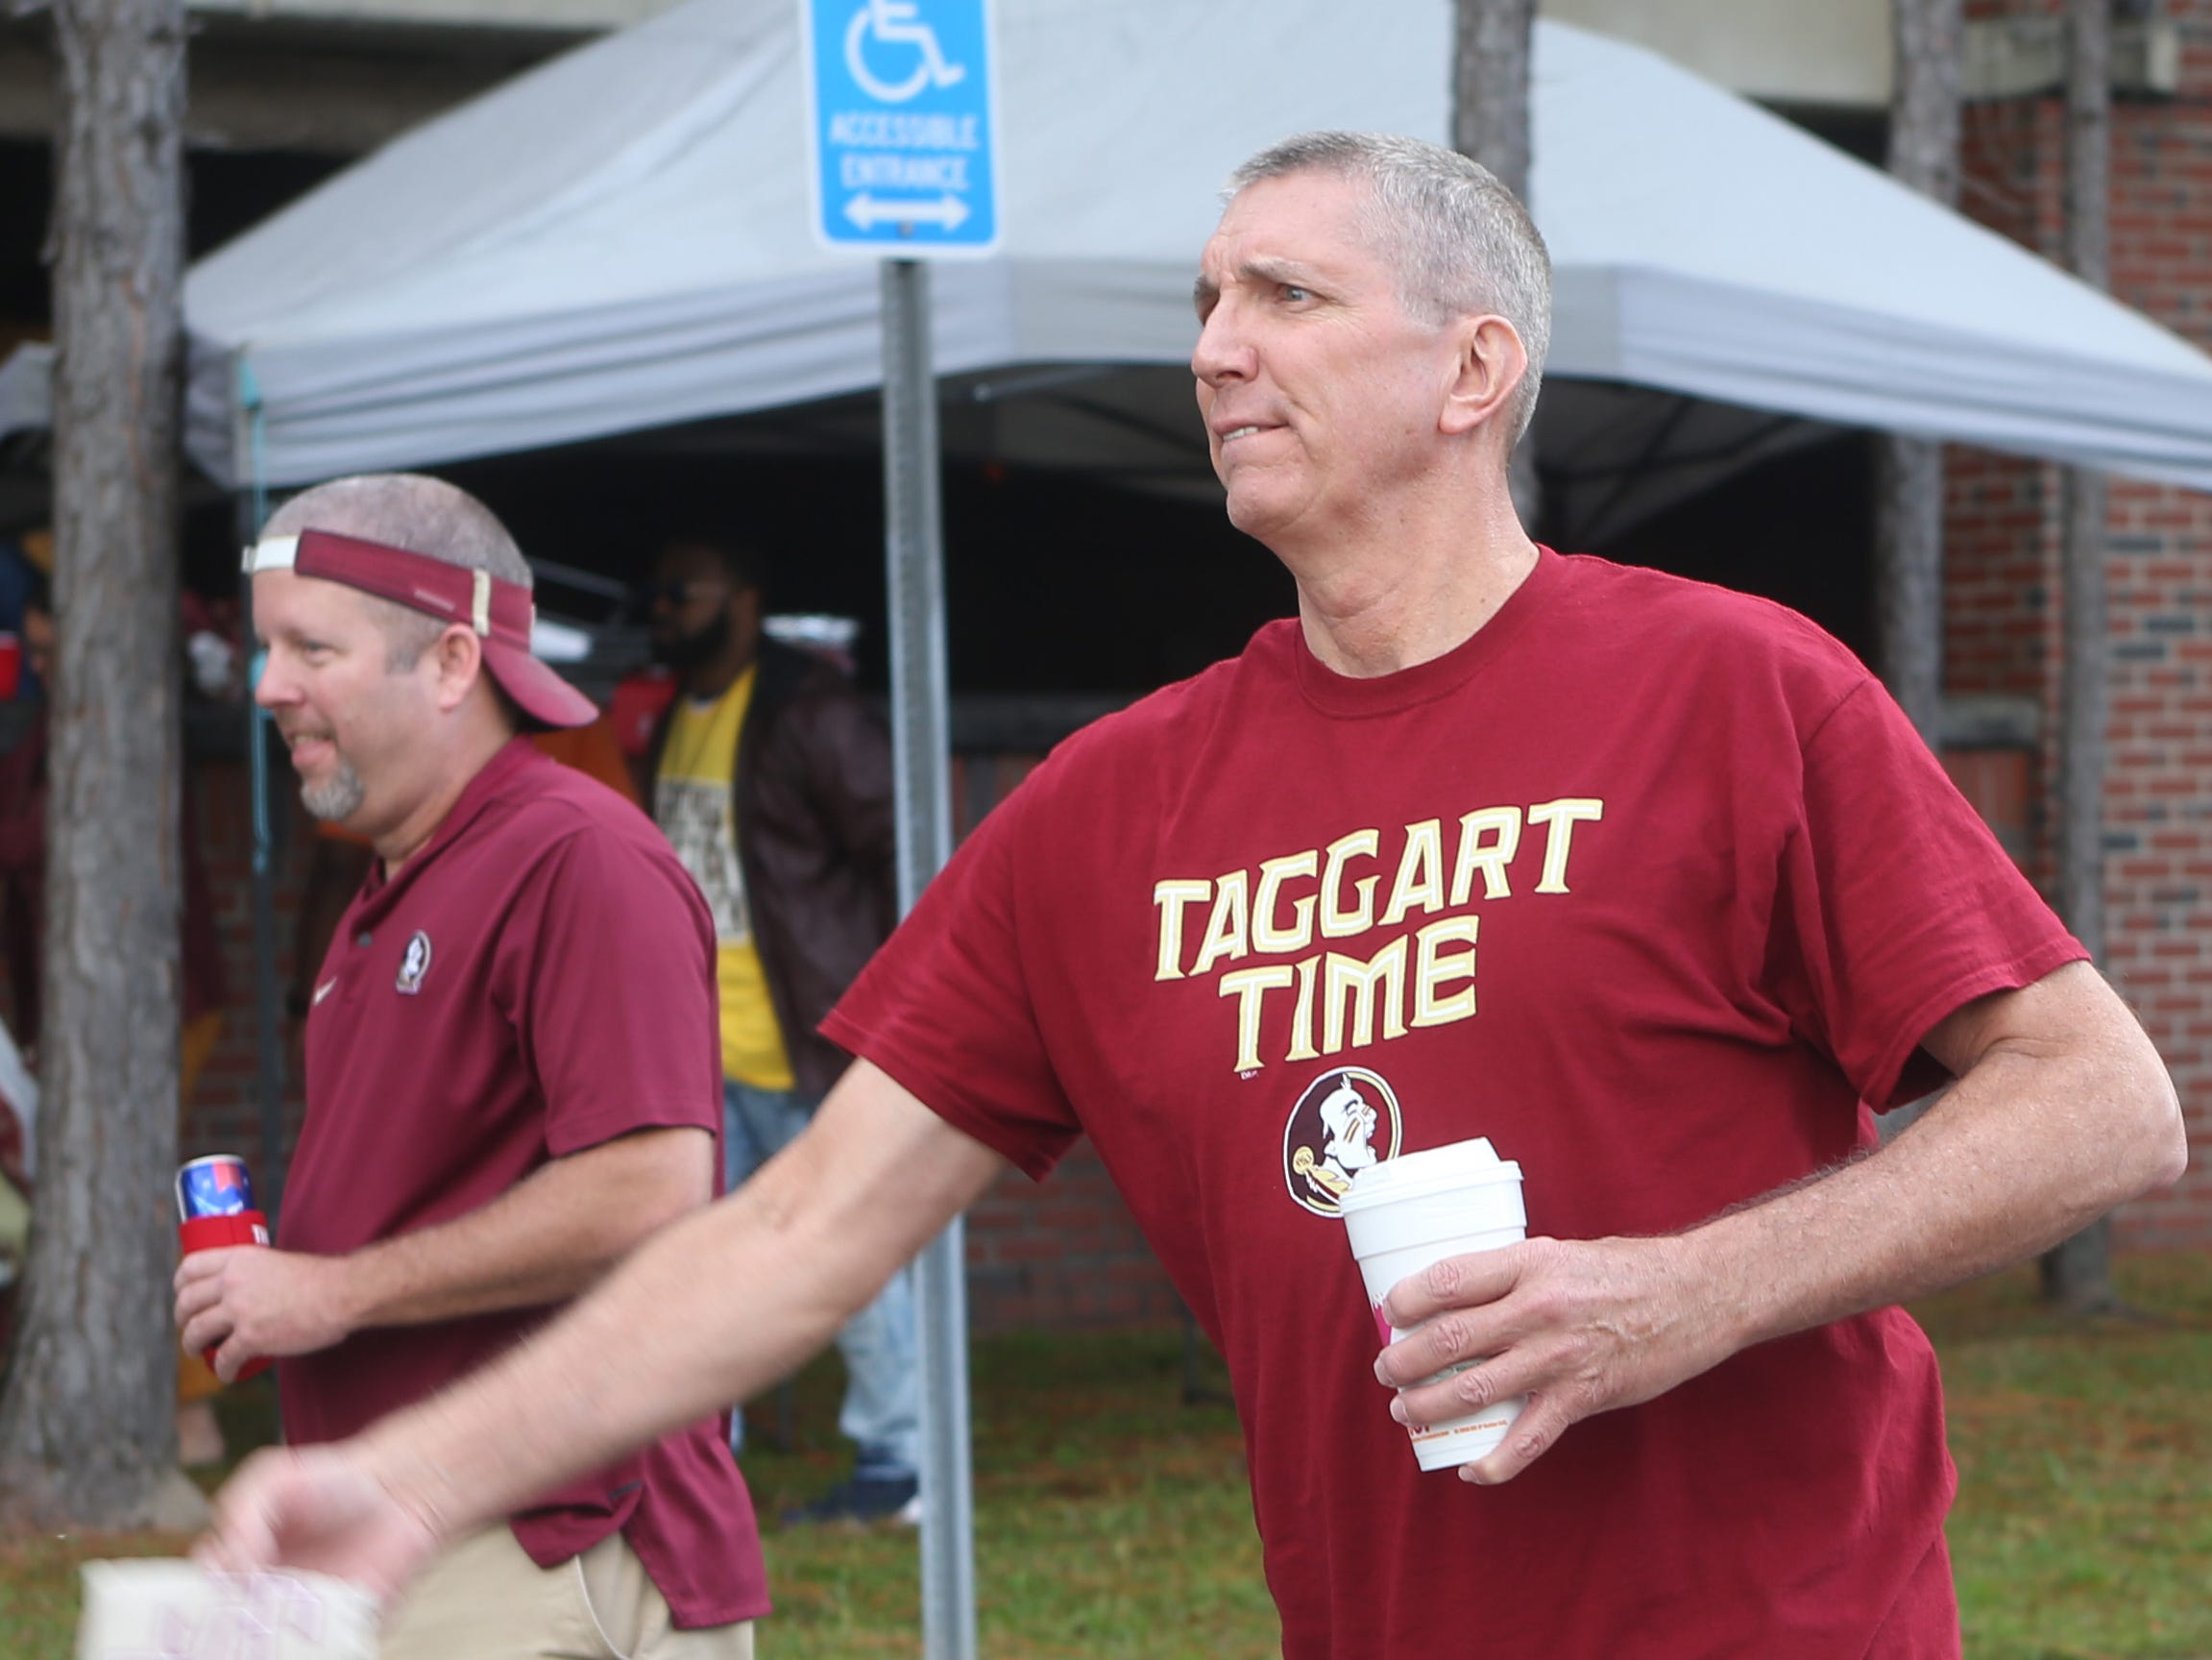 Seminole fans play corn hole as fans tailgate before the big rivalry game between the Florida State Seminoles and the Florida Gators, Saturday, Nov. 24, 2018.